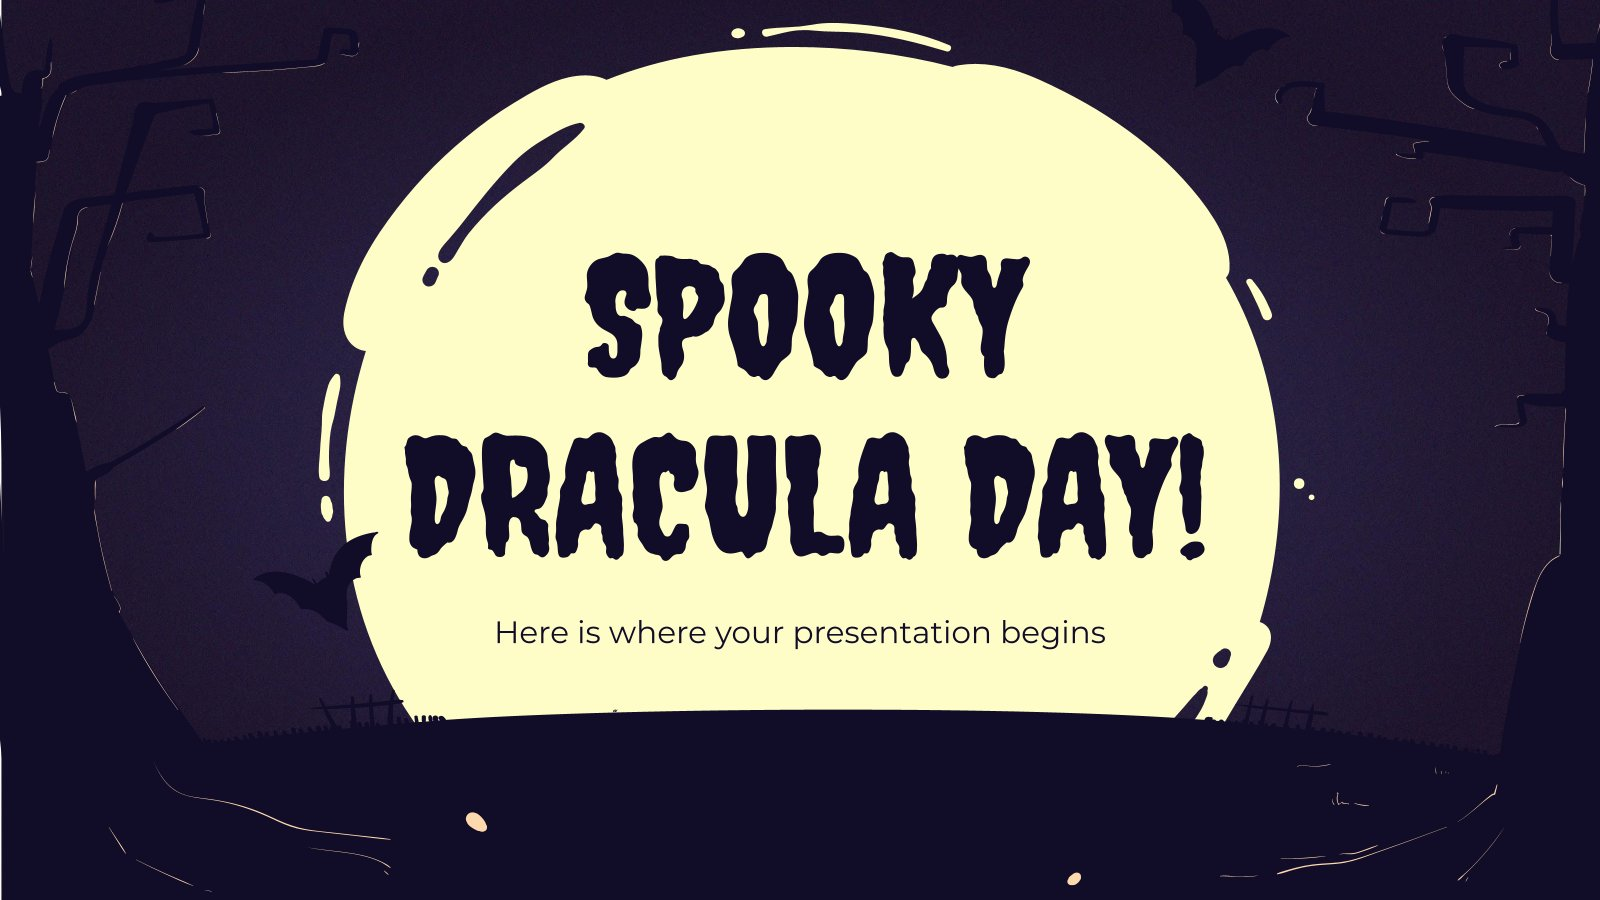 Spooky Dracula Day! presentation template